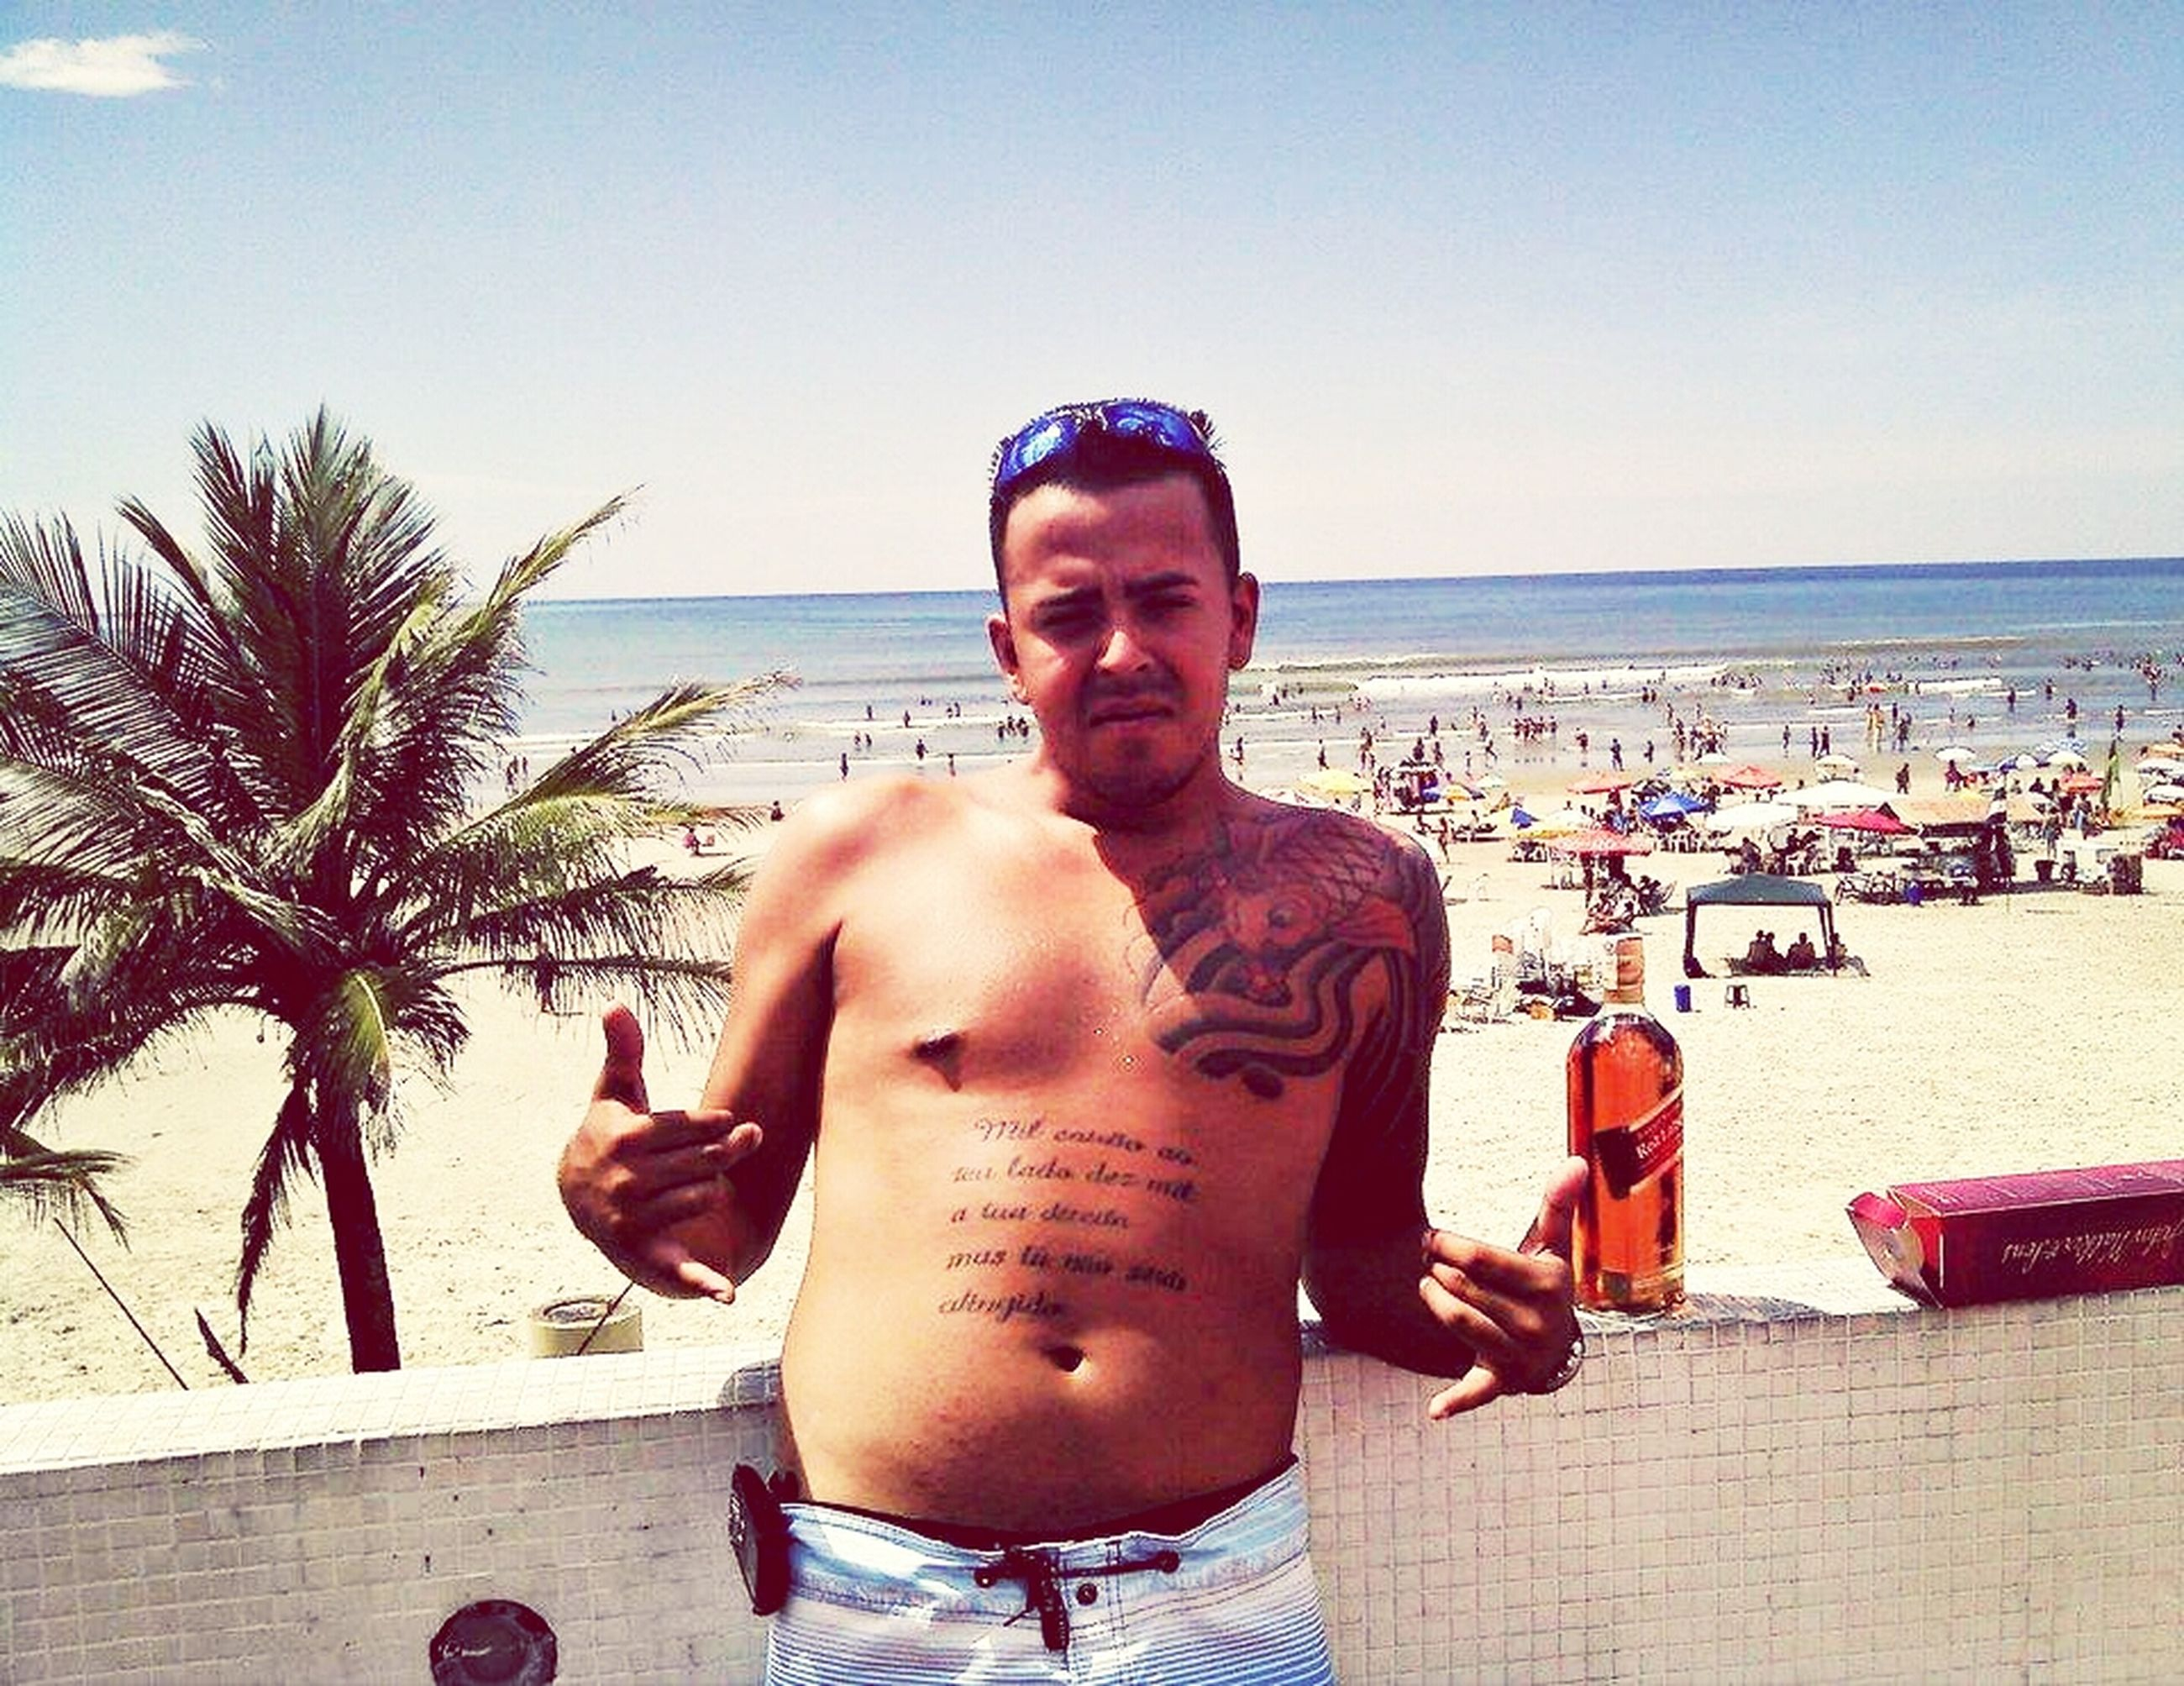 lifestyles, leisure activity, person, beach, sunglasses, sea, holding, sitting, food and drink, looking at camera, water, young men, portrait, young adult, sky, waist up, front view, smiling